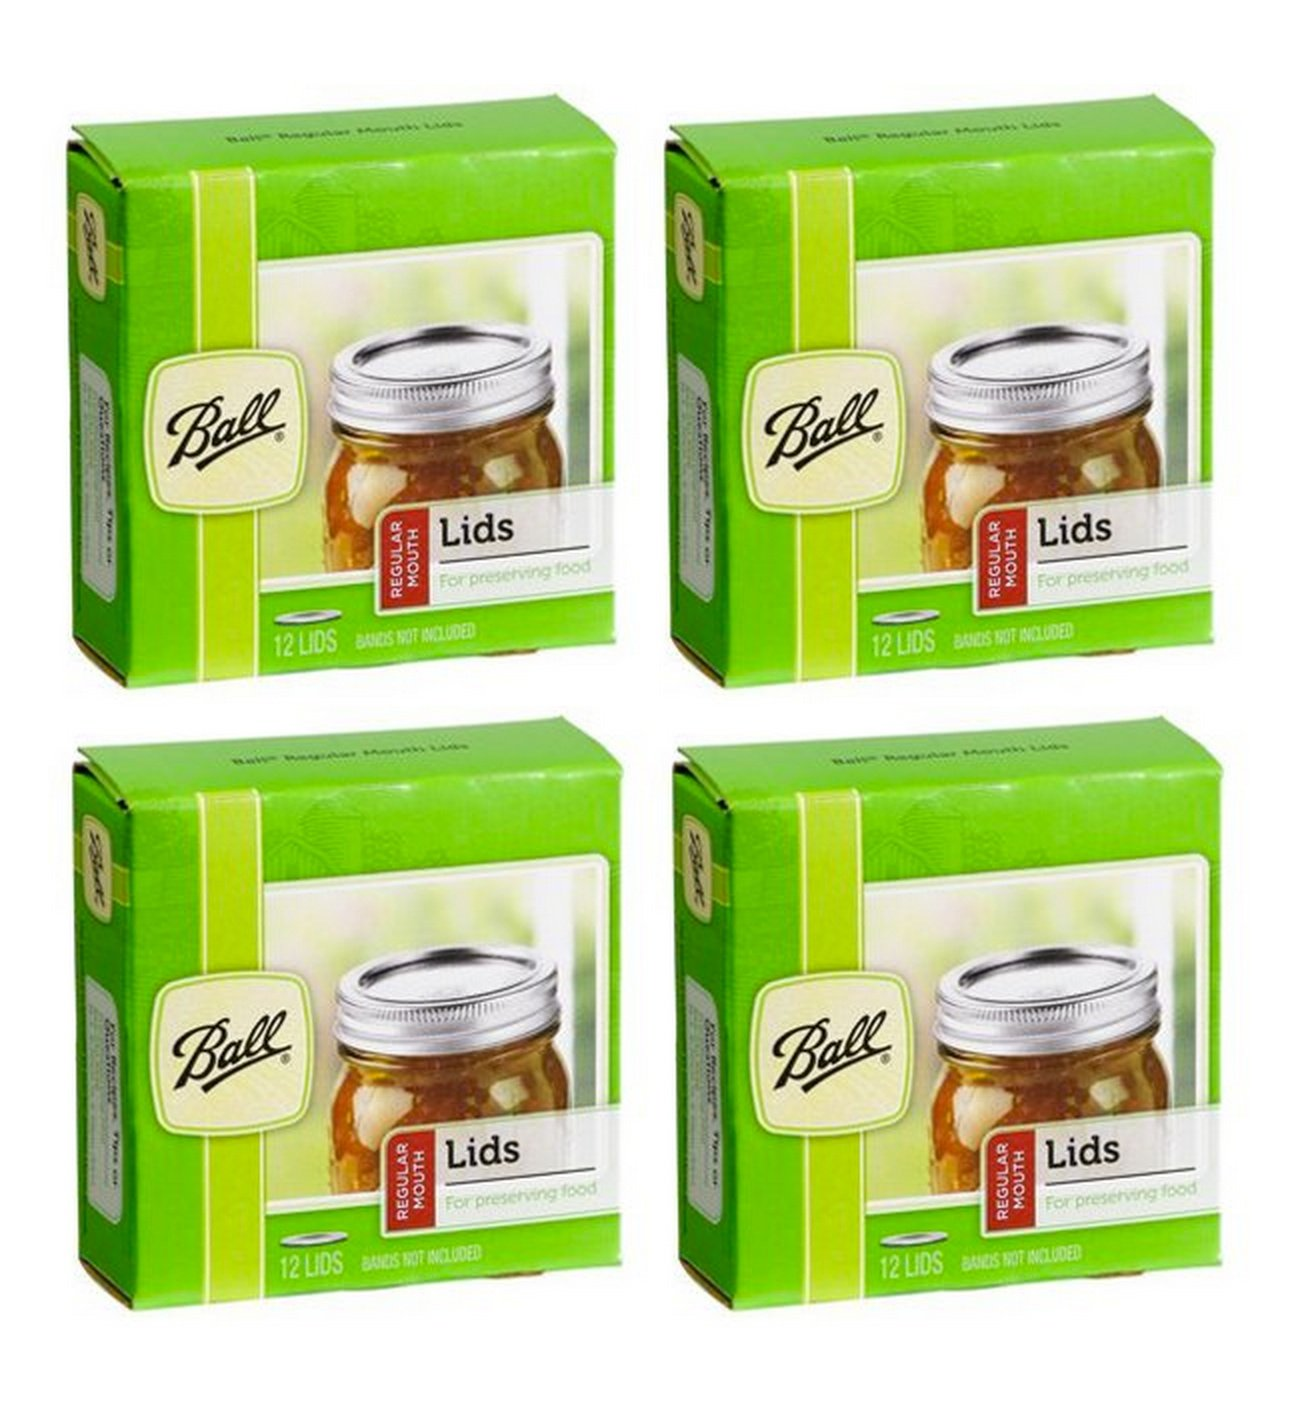 Ball Regular Mouth Canning Mason Jar Lids 4-Packs with 12-Lids Each (48 Lids Total) by Jarden